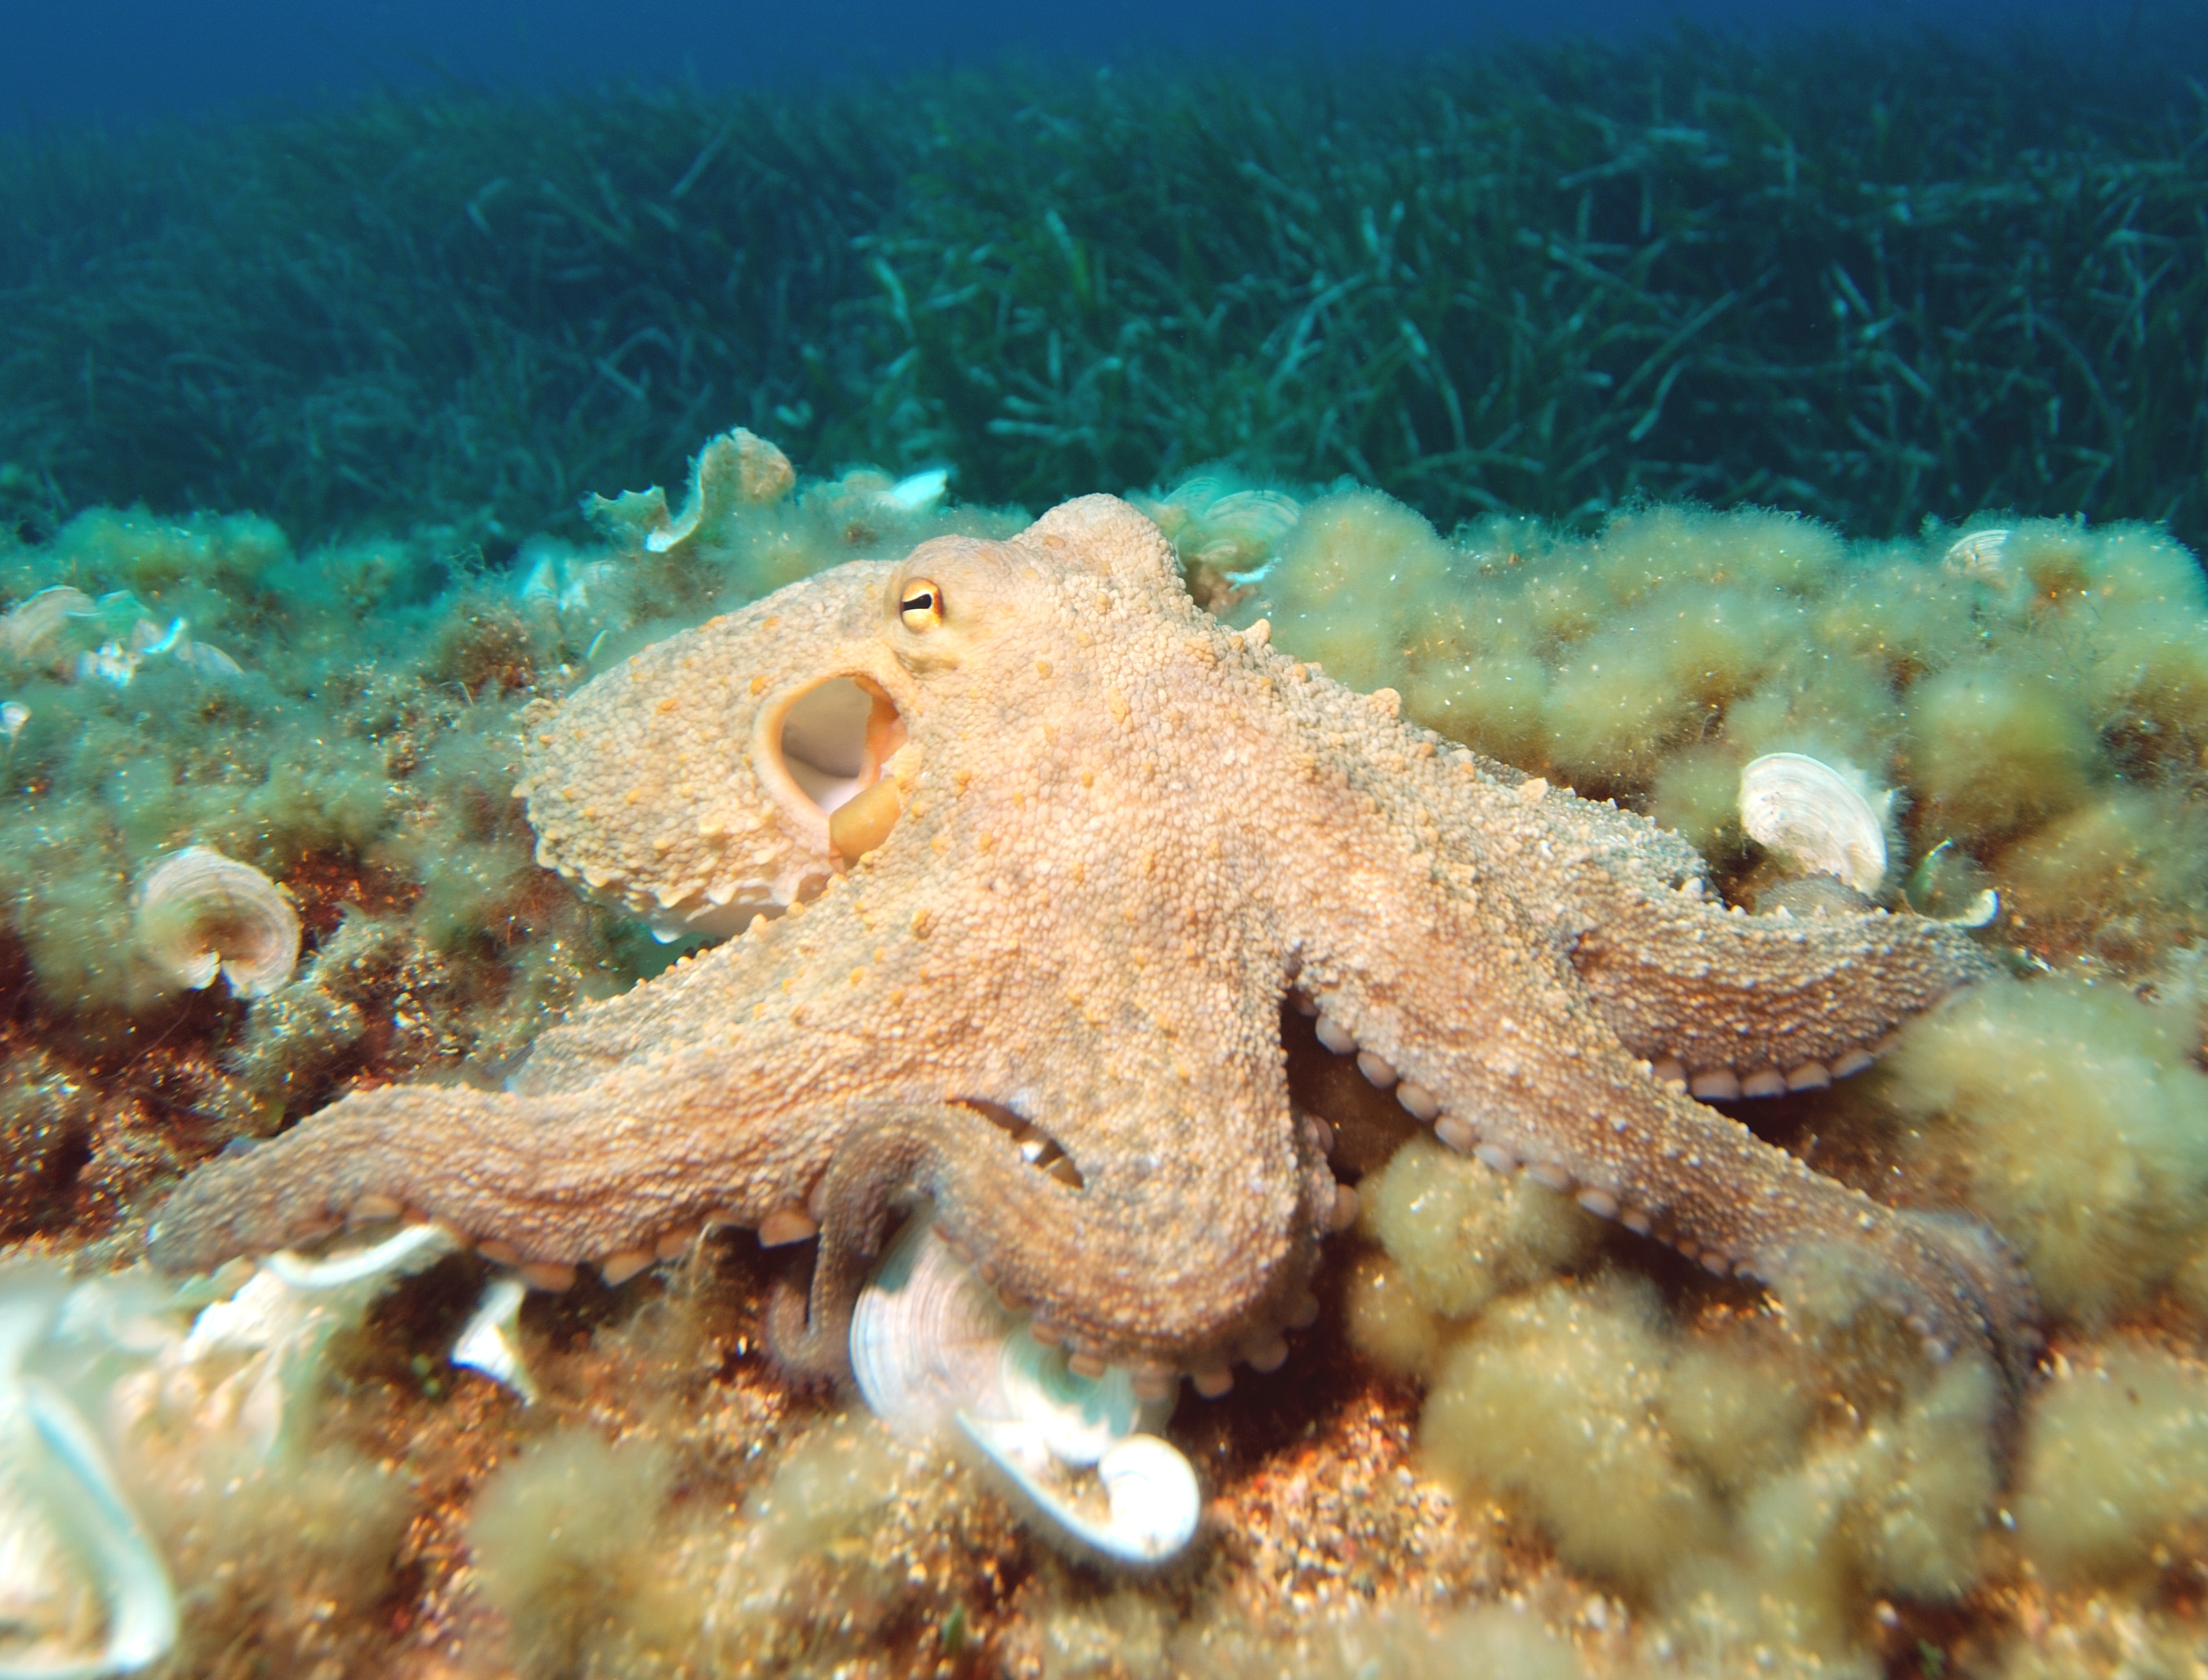 File:Octopus2.jpg - Wi...